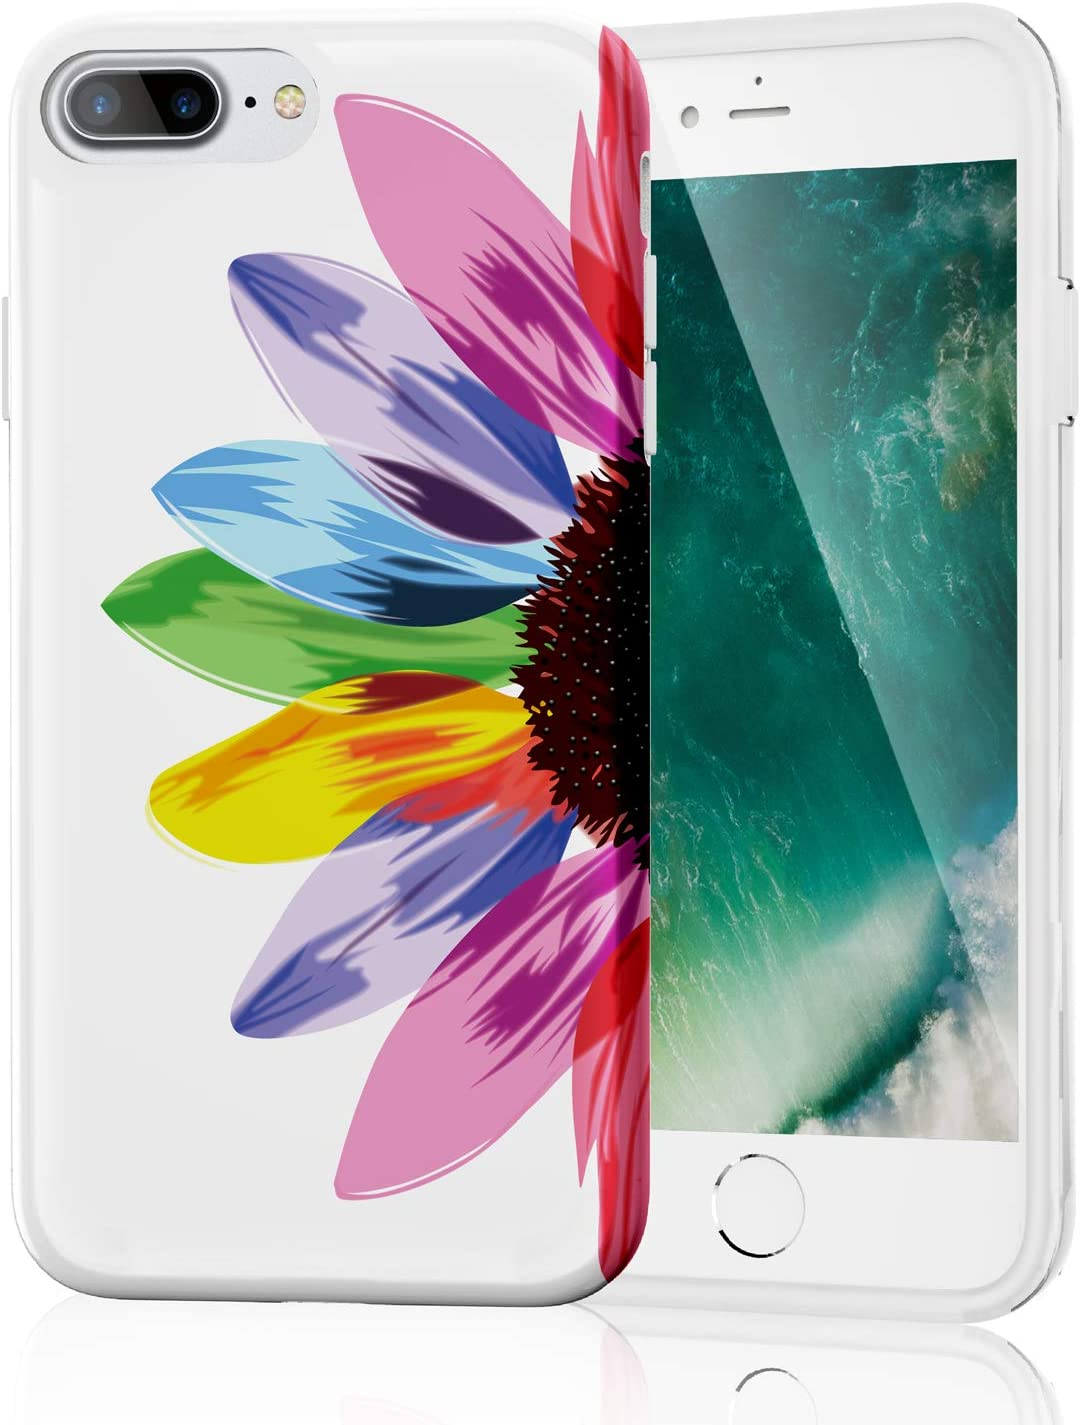 iPhone 8 Plus Case, iPhone 7 Plus Case for Girls, Stylish Clear Slim Fit Glossy TPU Soft Rubber Silicone Cover Phone Case for iPhone 7 Plus/iPhone 8 Plus Seven Color Rainbow Flower